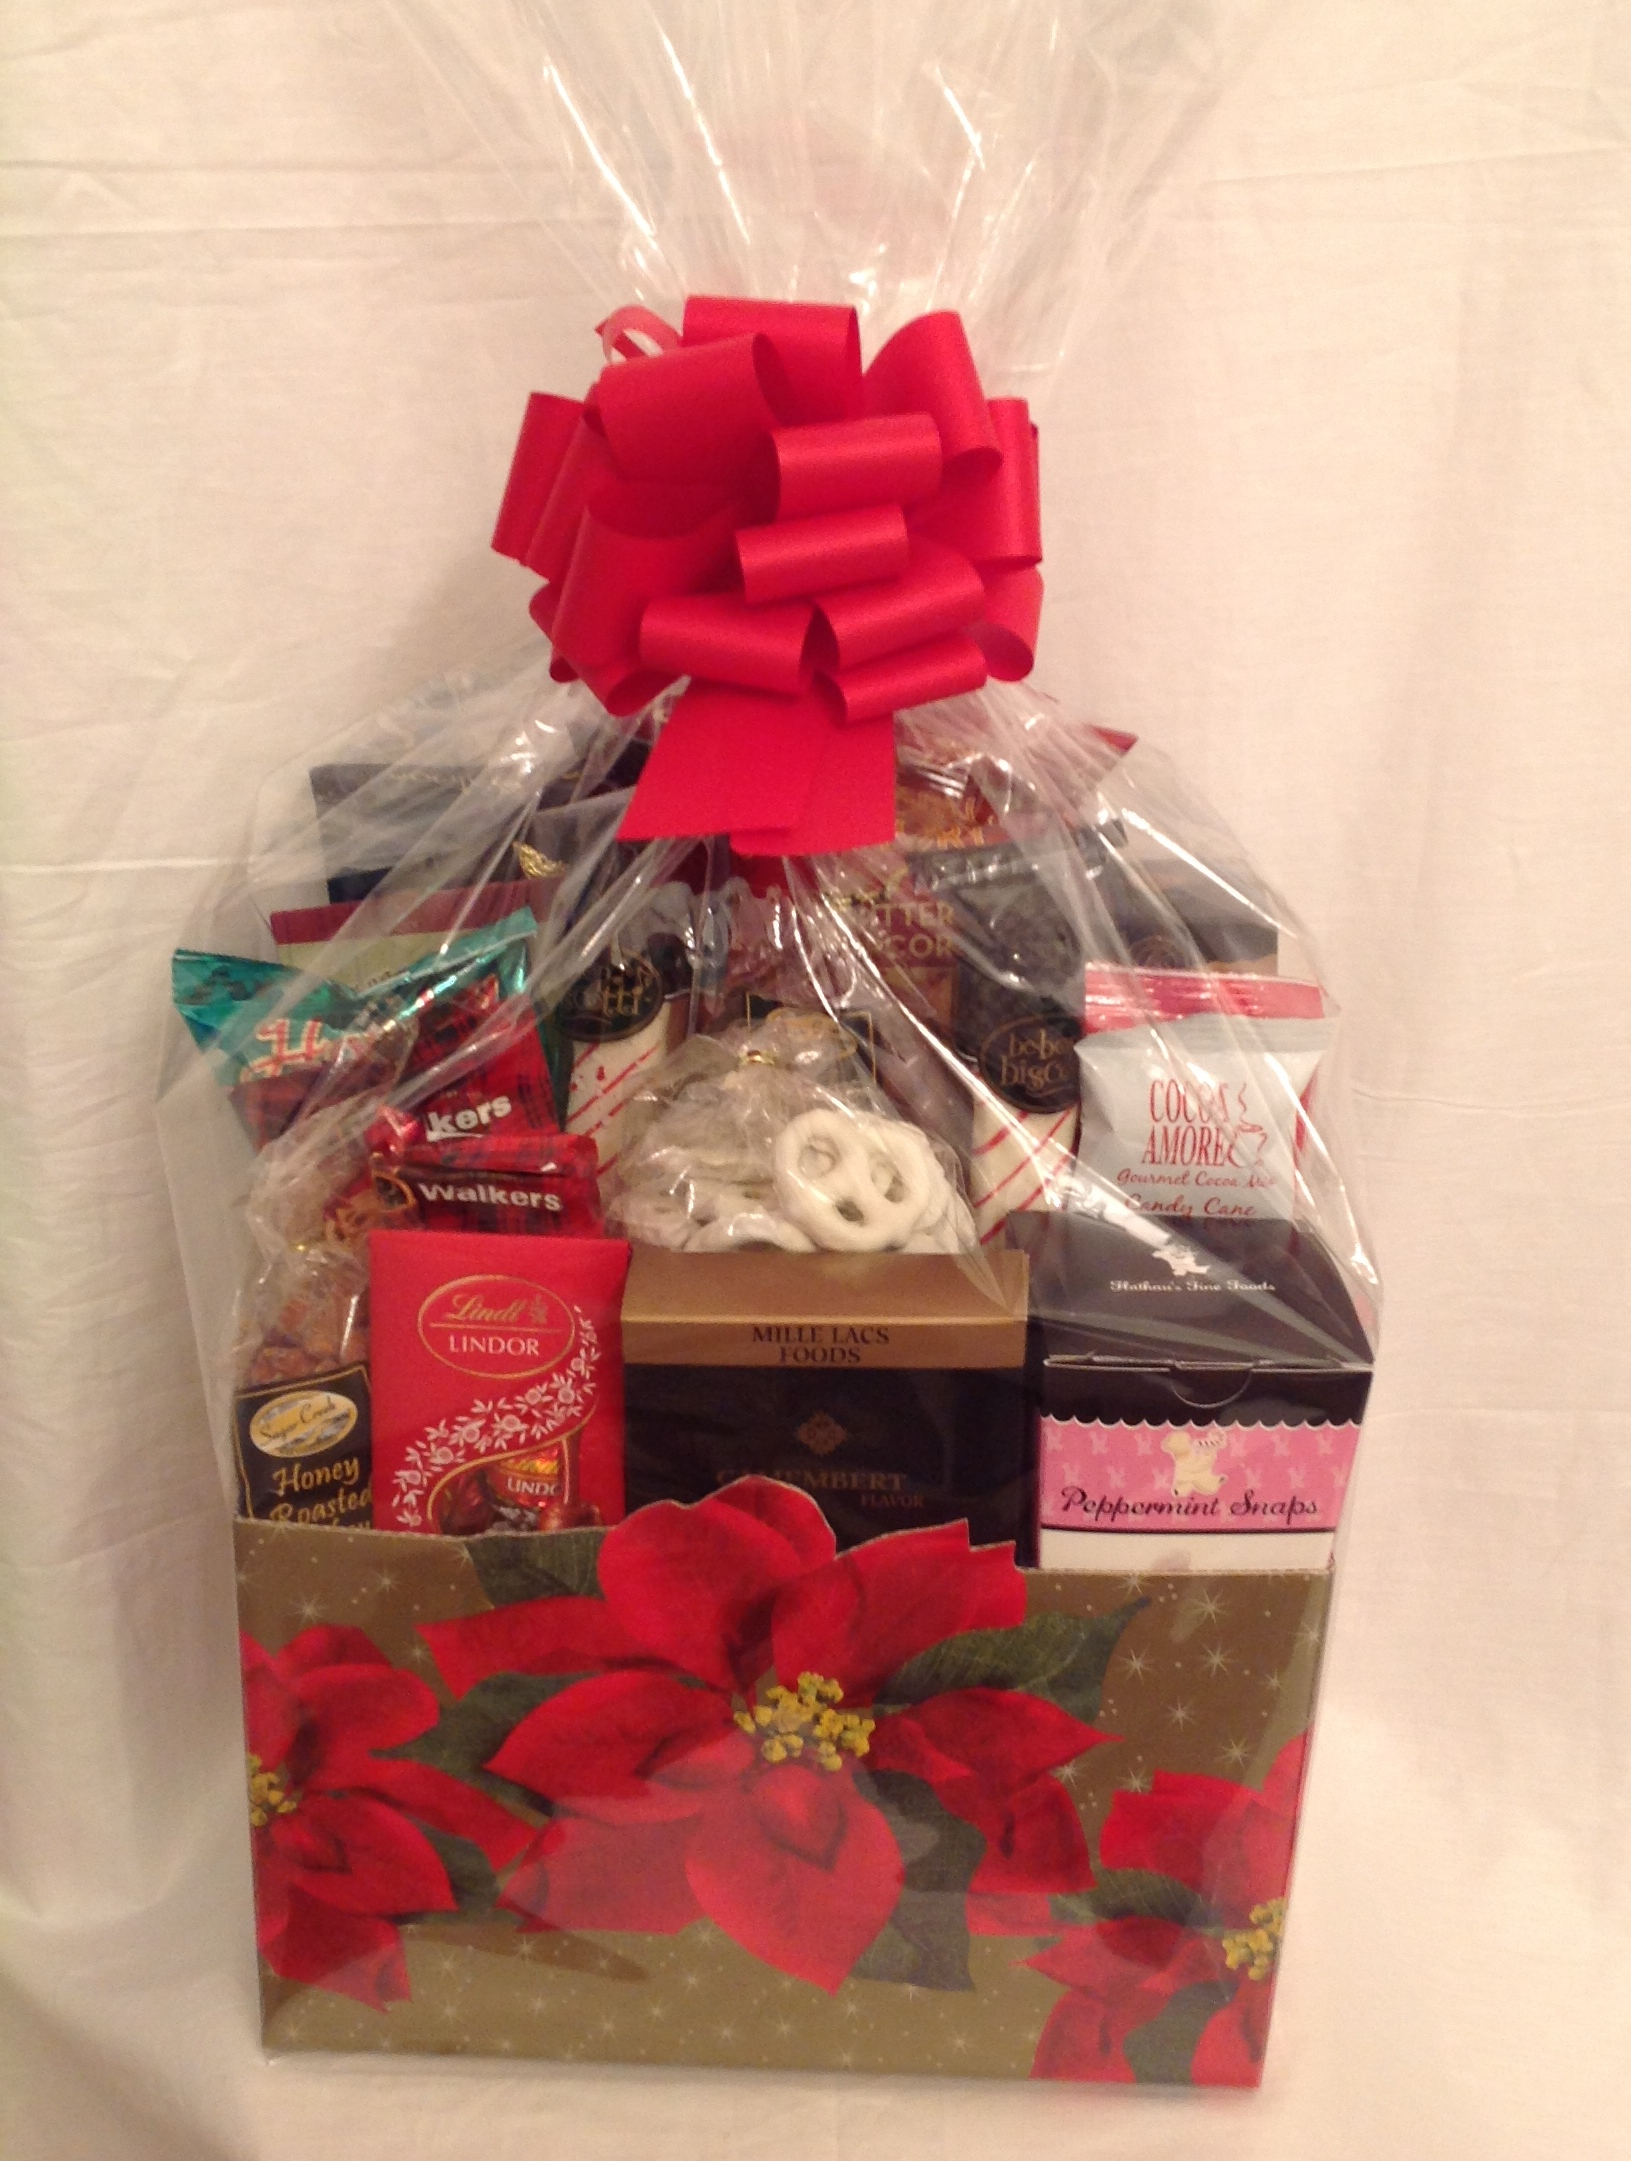 Holiday Greetings, Gifts for Clients at Christmas ...